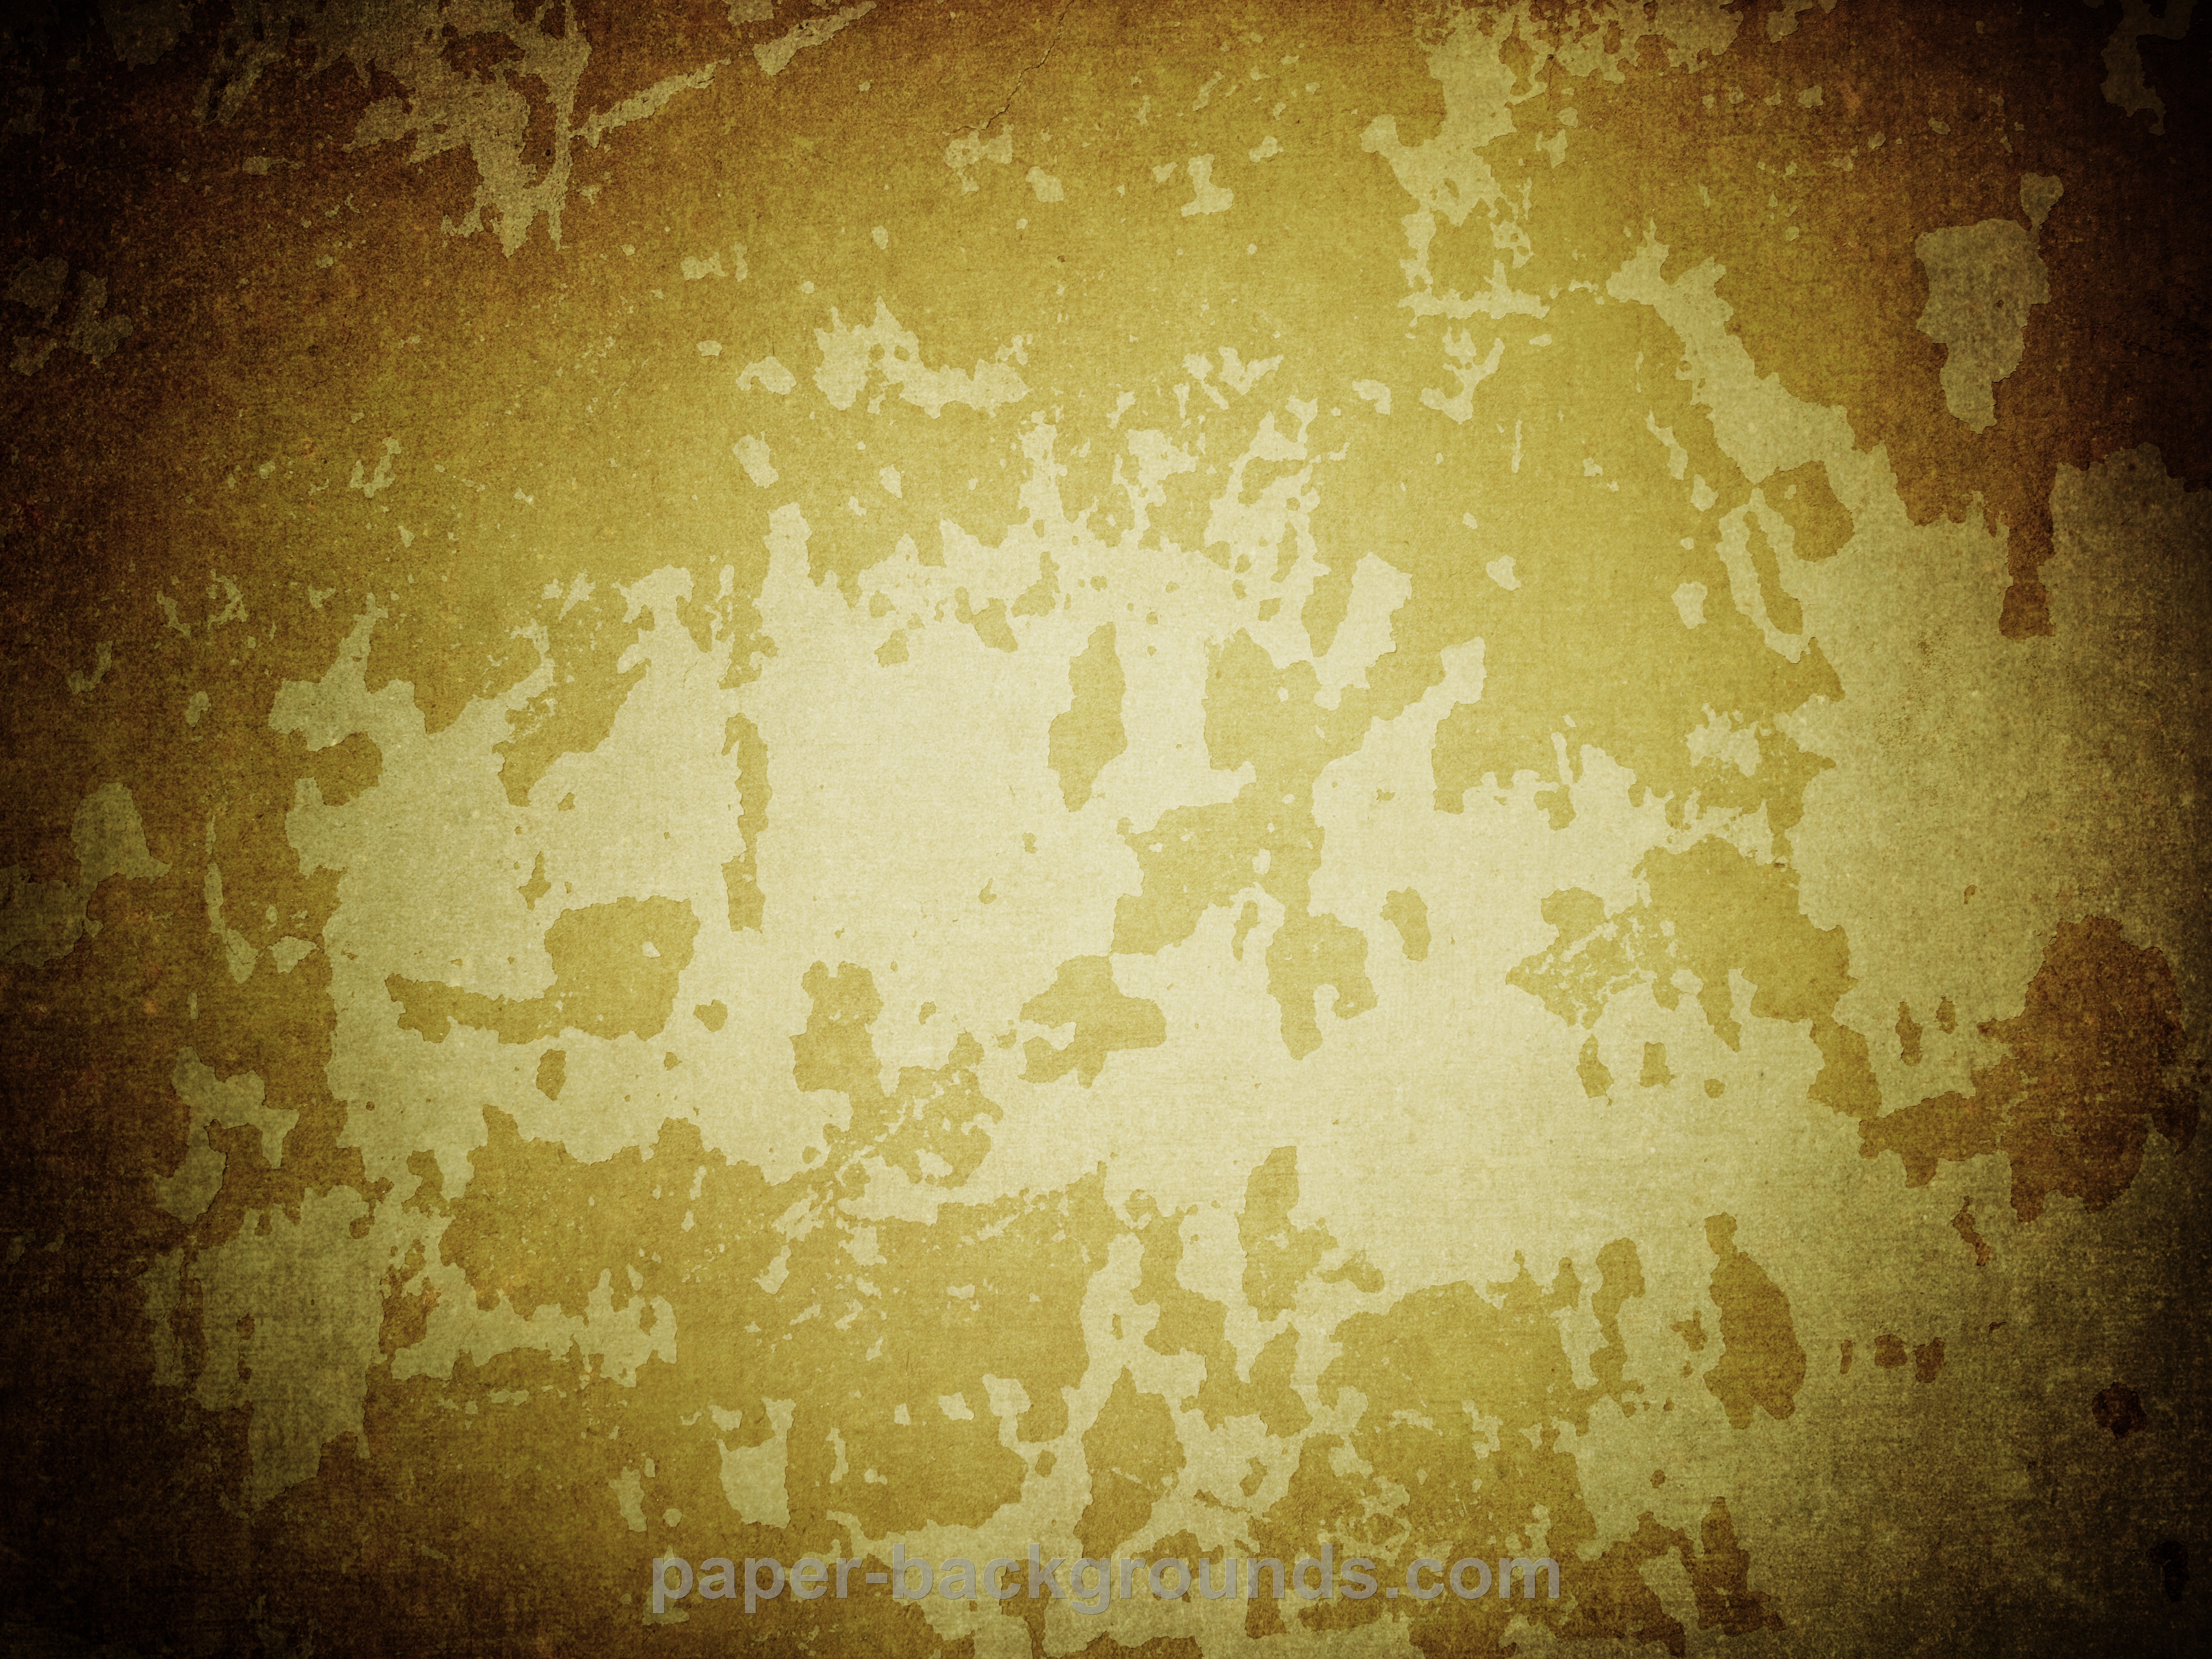 Paper Backgrounds | yellow-grunge-overlay-texture